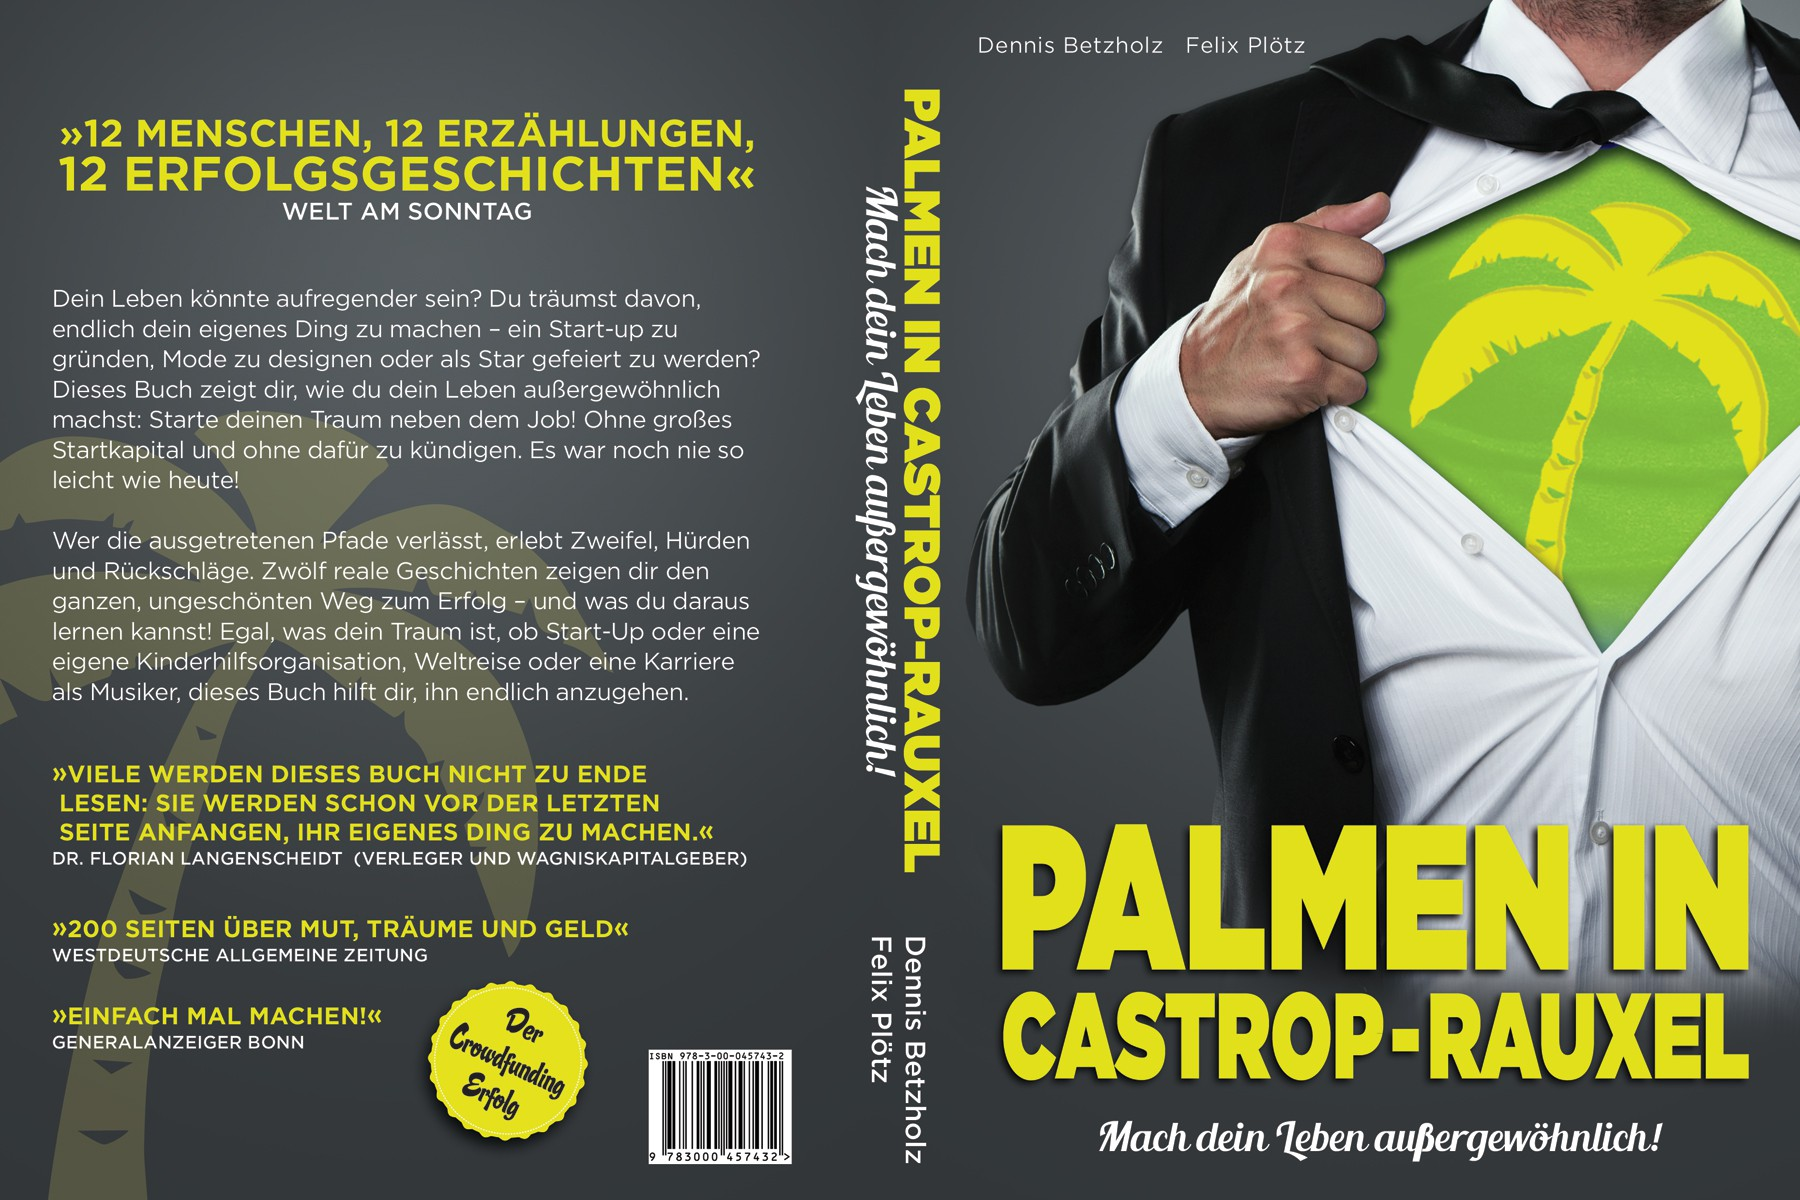 EASY job for s.o. with good Photoshop skills + talent for fonts // optimization of draft book cover